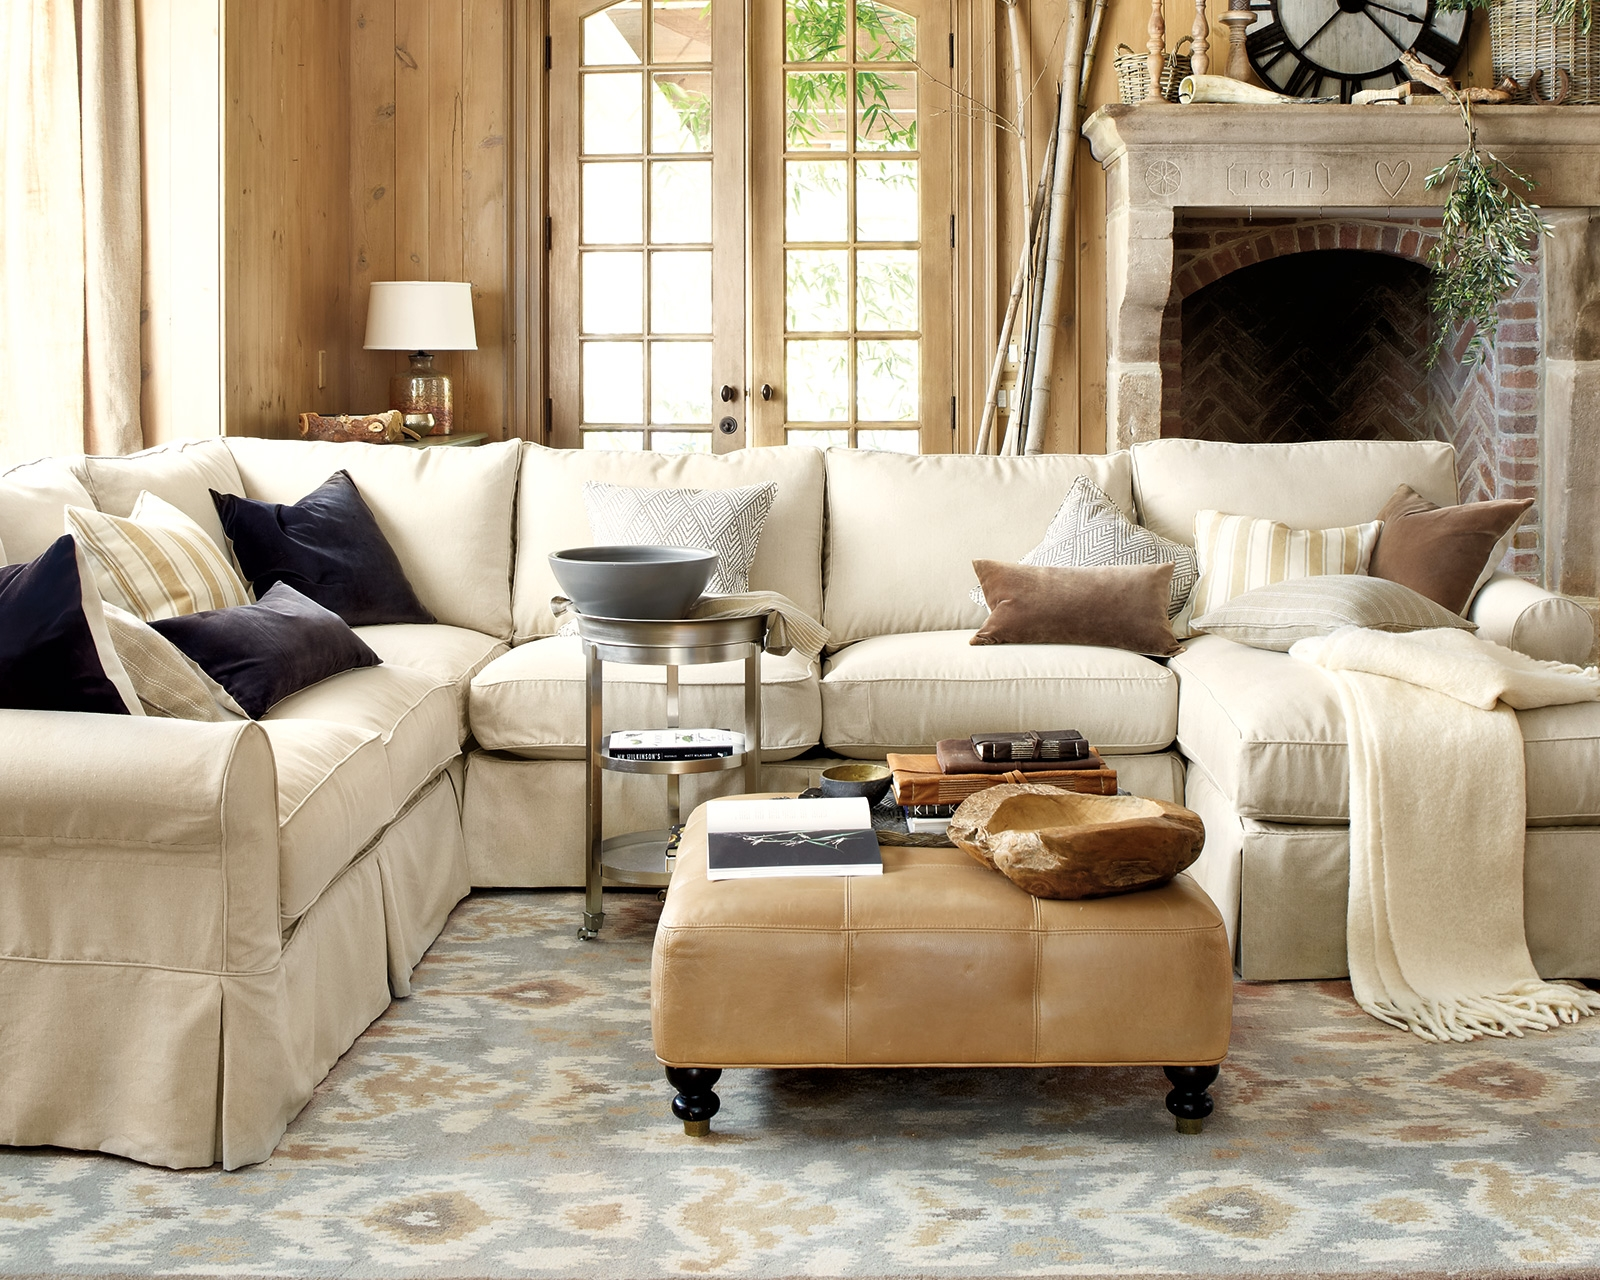 How To Match A Coffee Table To Your Sectional How To Decorate With Regard To Coffee Table For Sectional Sofa (#10 of 12)